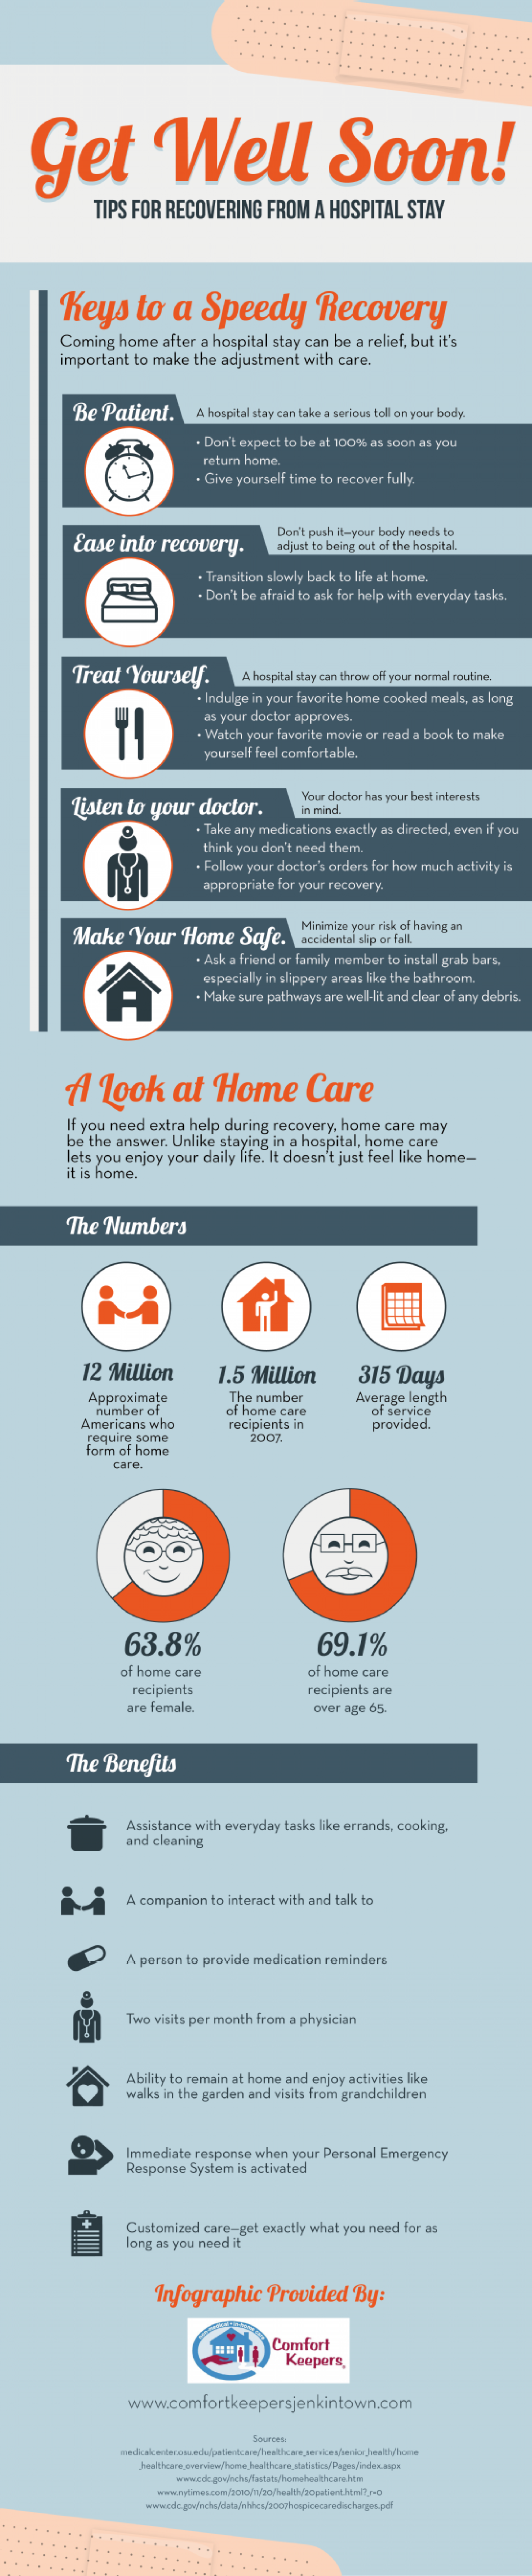 Get Well Soon! Tips for Recovering from a Hospital Stay Infographic